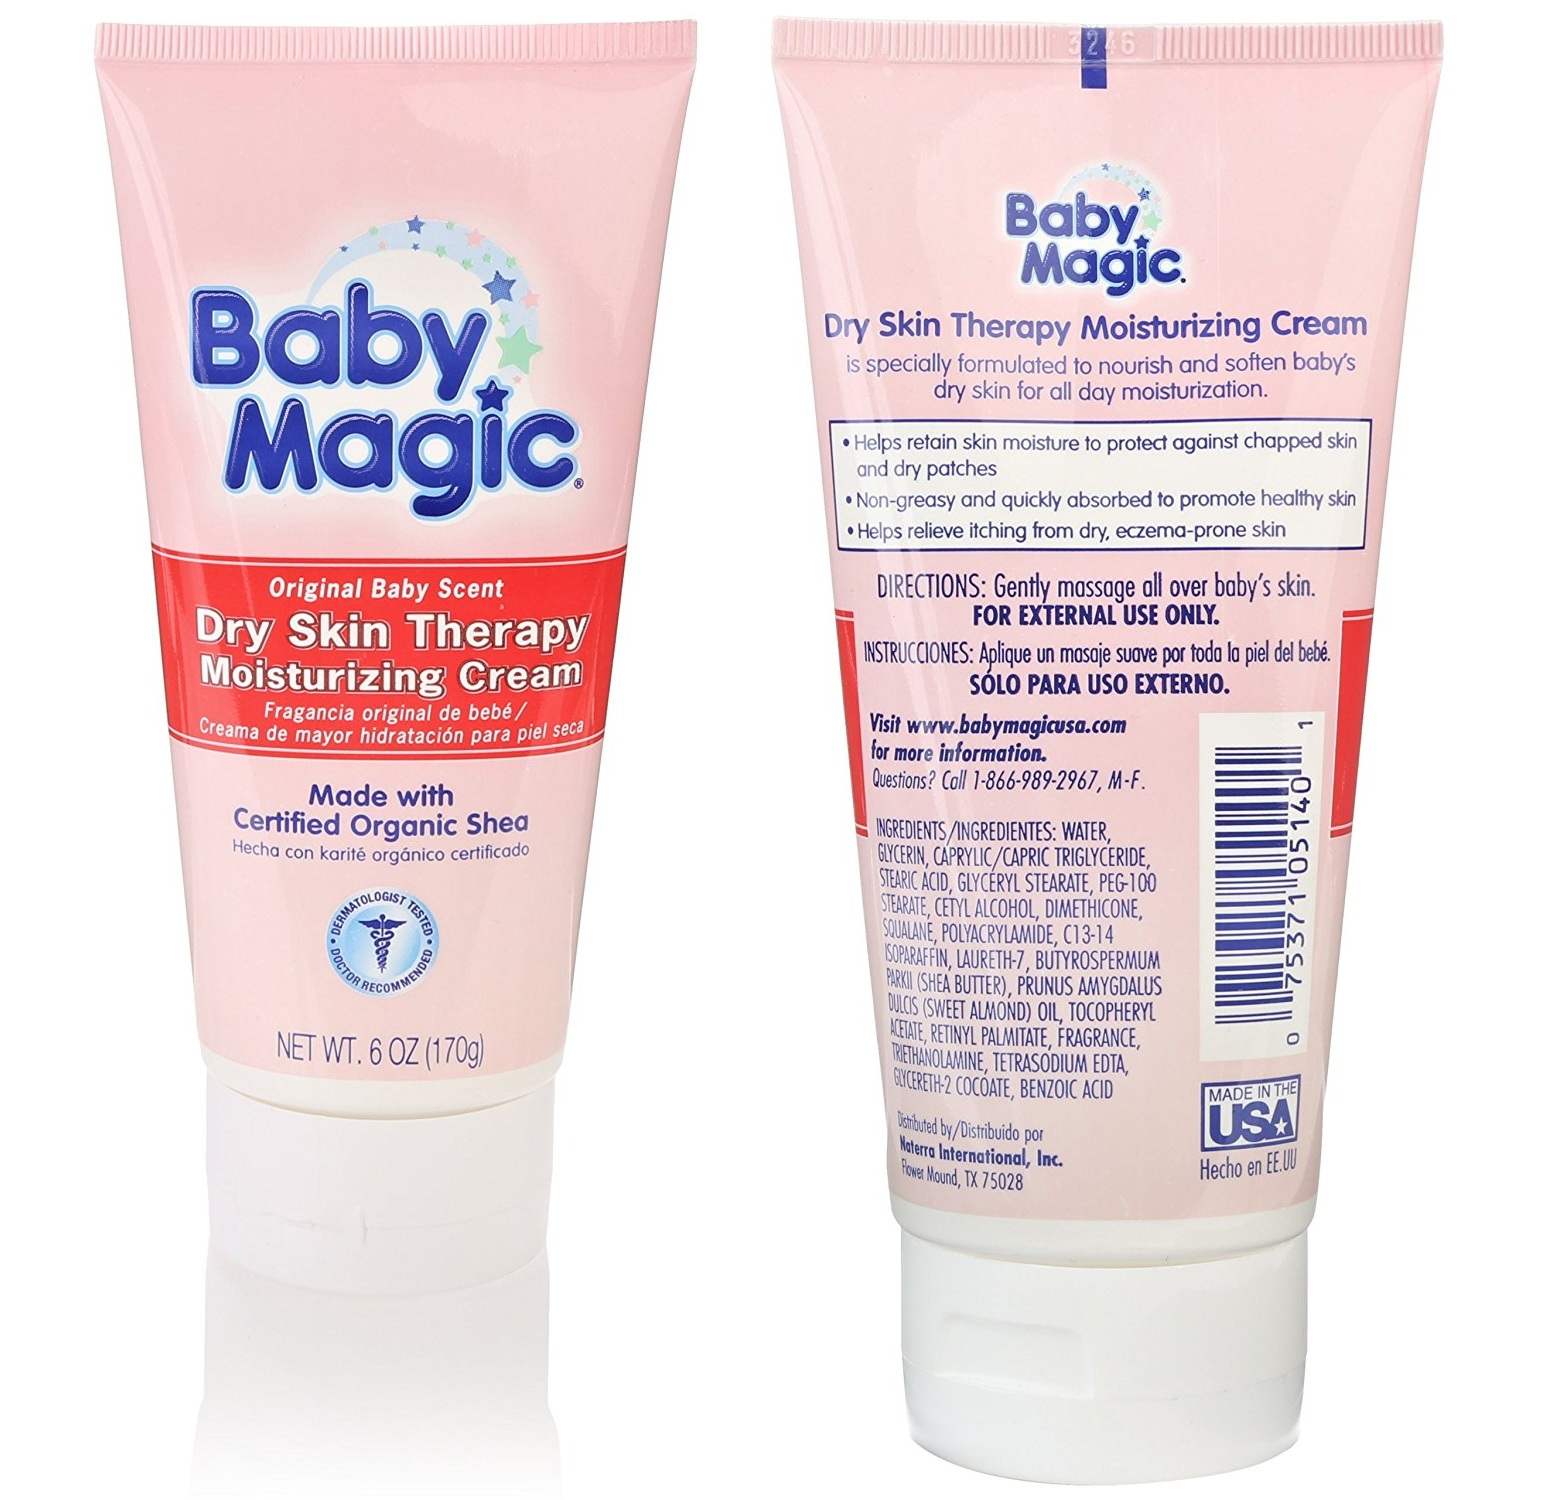 Baby Magic Dry Skin chuyên trị chàm cho bé Baby Magic Dry Skin Therapy Moisturizing Cream